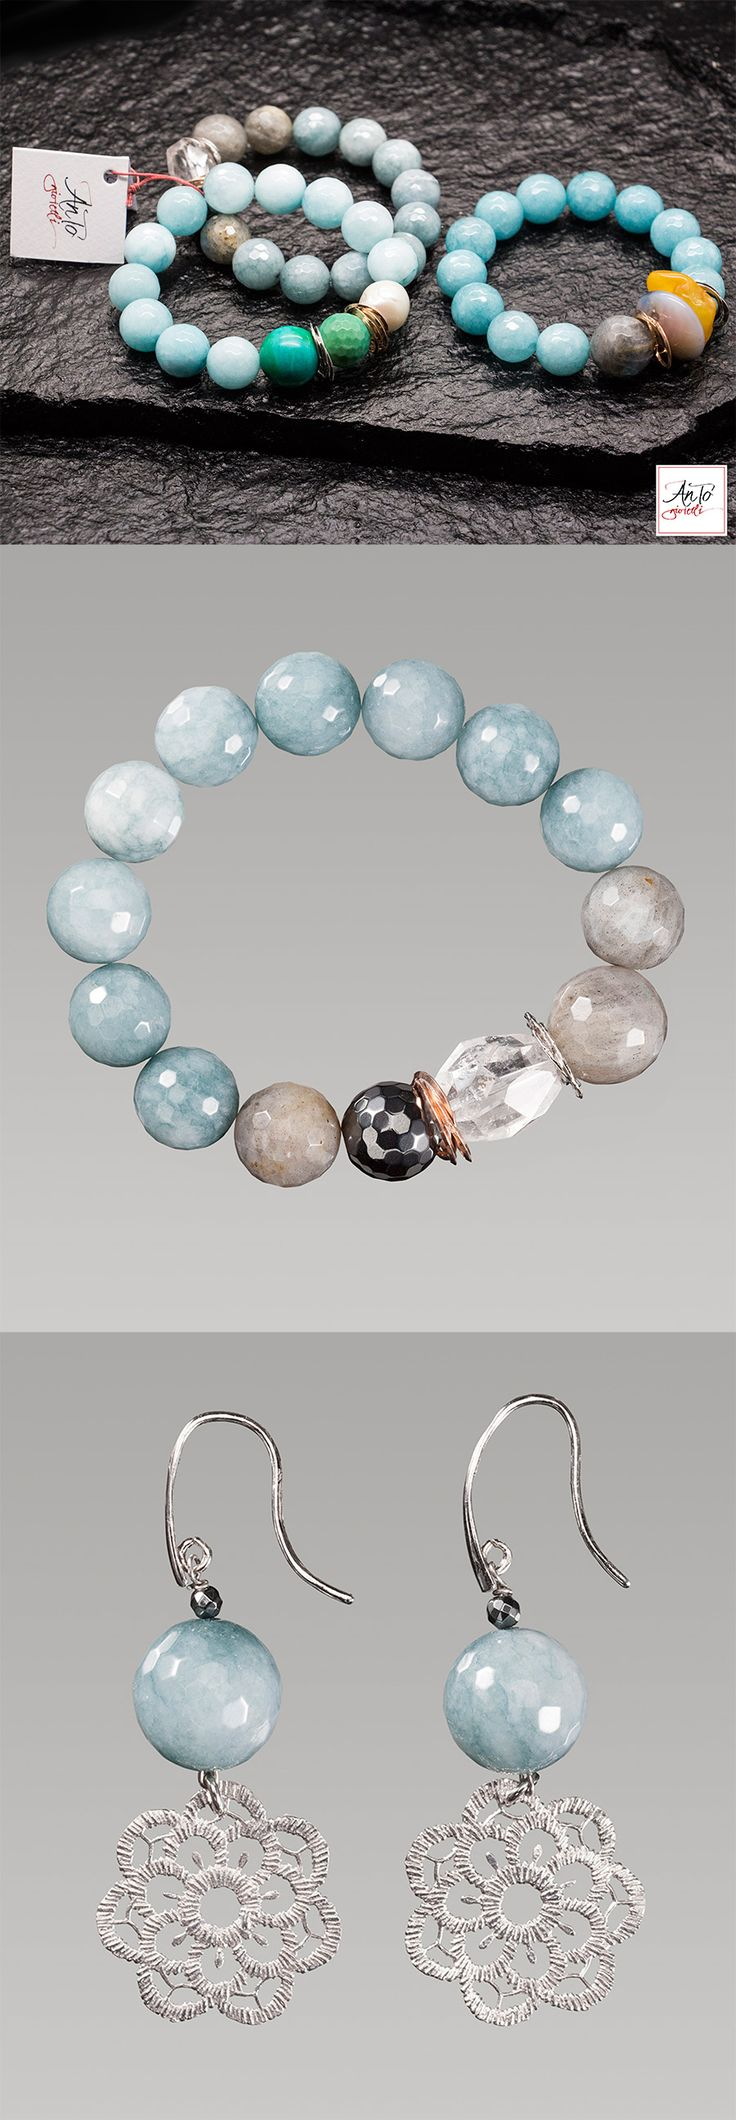 Bracelet: 49€ Earring: 52€  Shipping free!!! Handmade in Italy.  Beautiful light blue bracelet, with blue Jade stone and Crystal. Details Silver 925, without Nichel. Buy it on our website: http://www.antogioielli.it/50-azzurro-blu